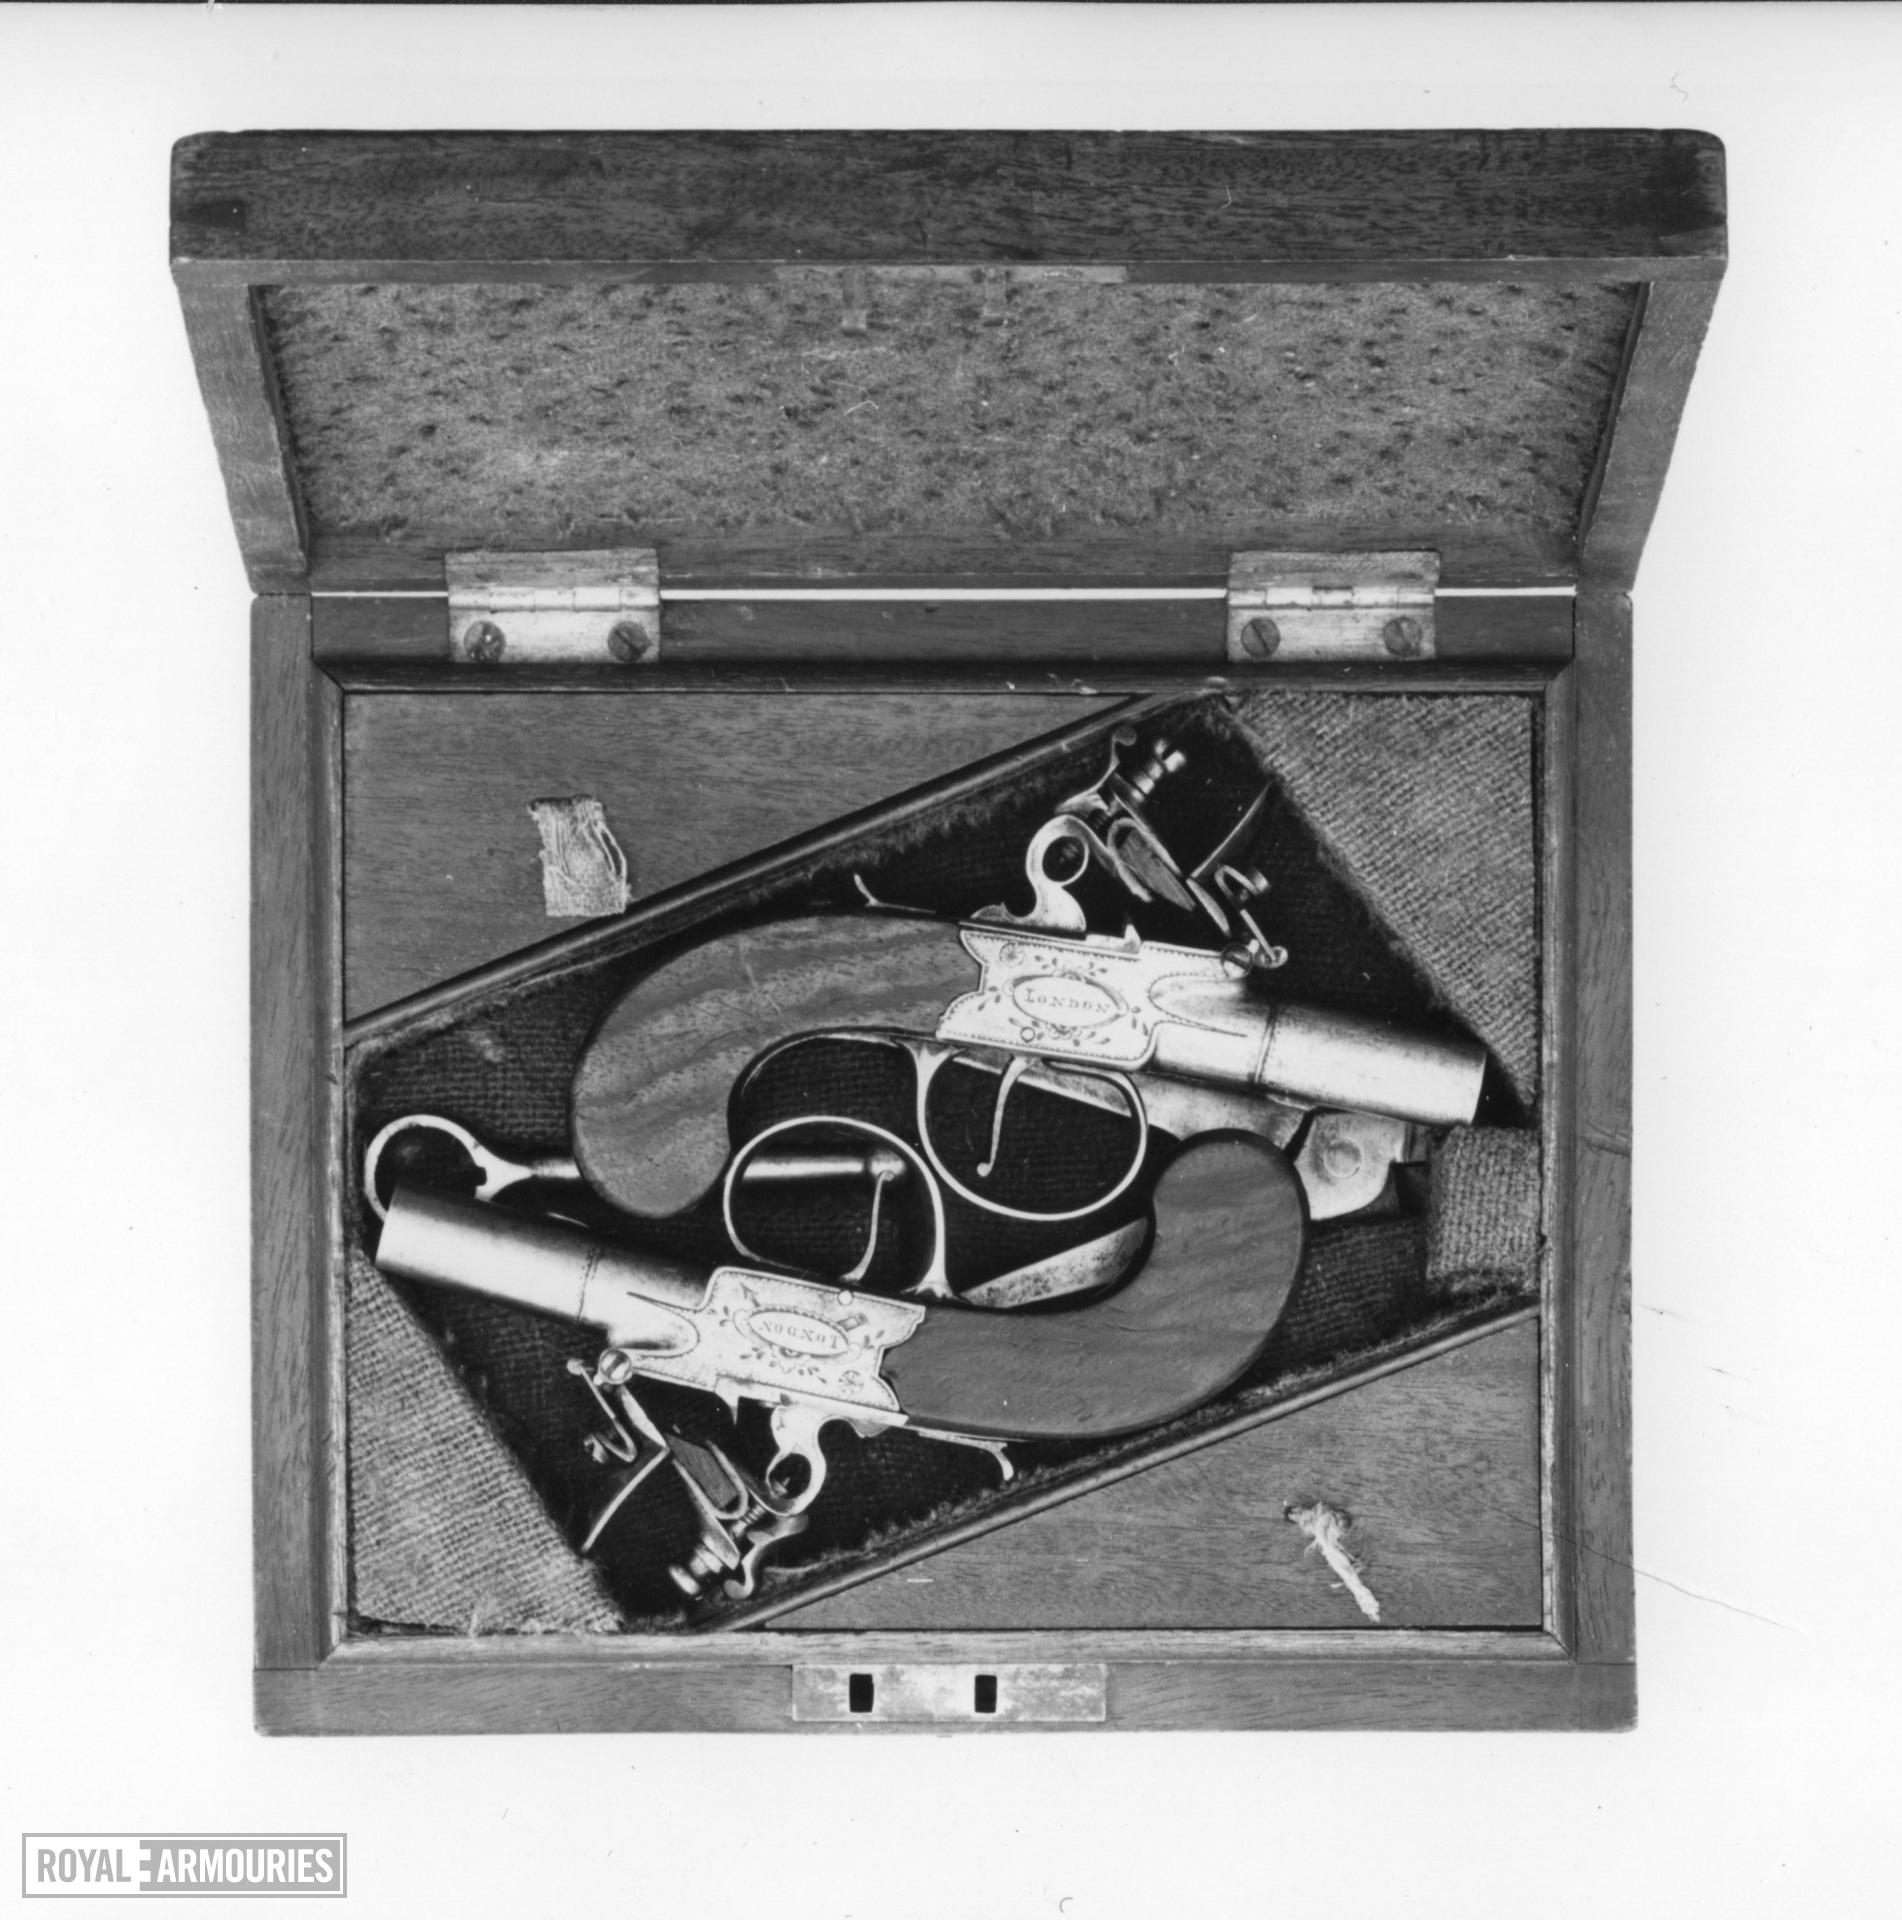 Flintlock pocket pistol By Perry Case; one of a pair; see XII.1739